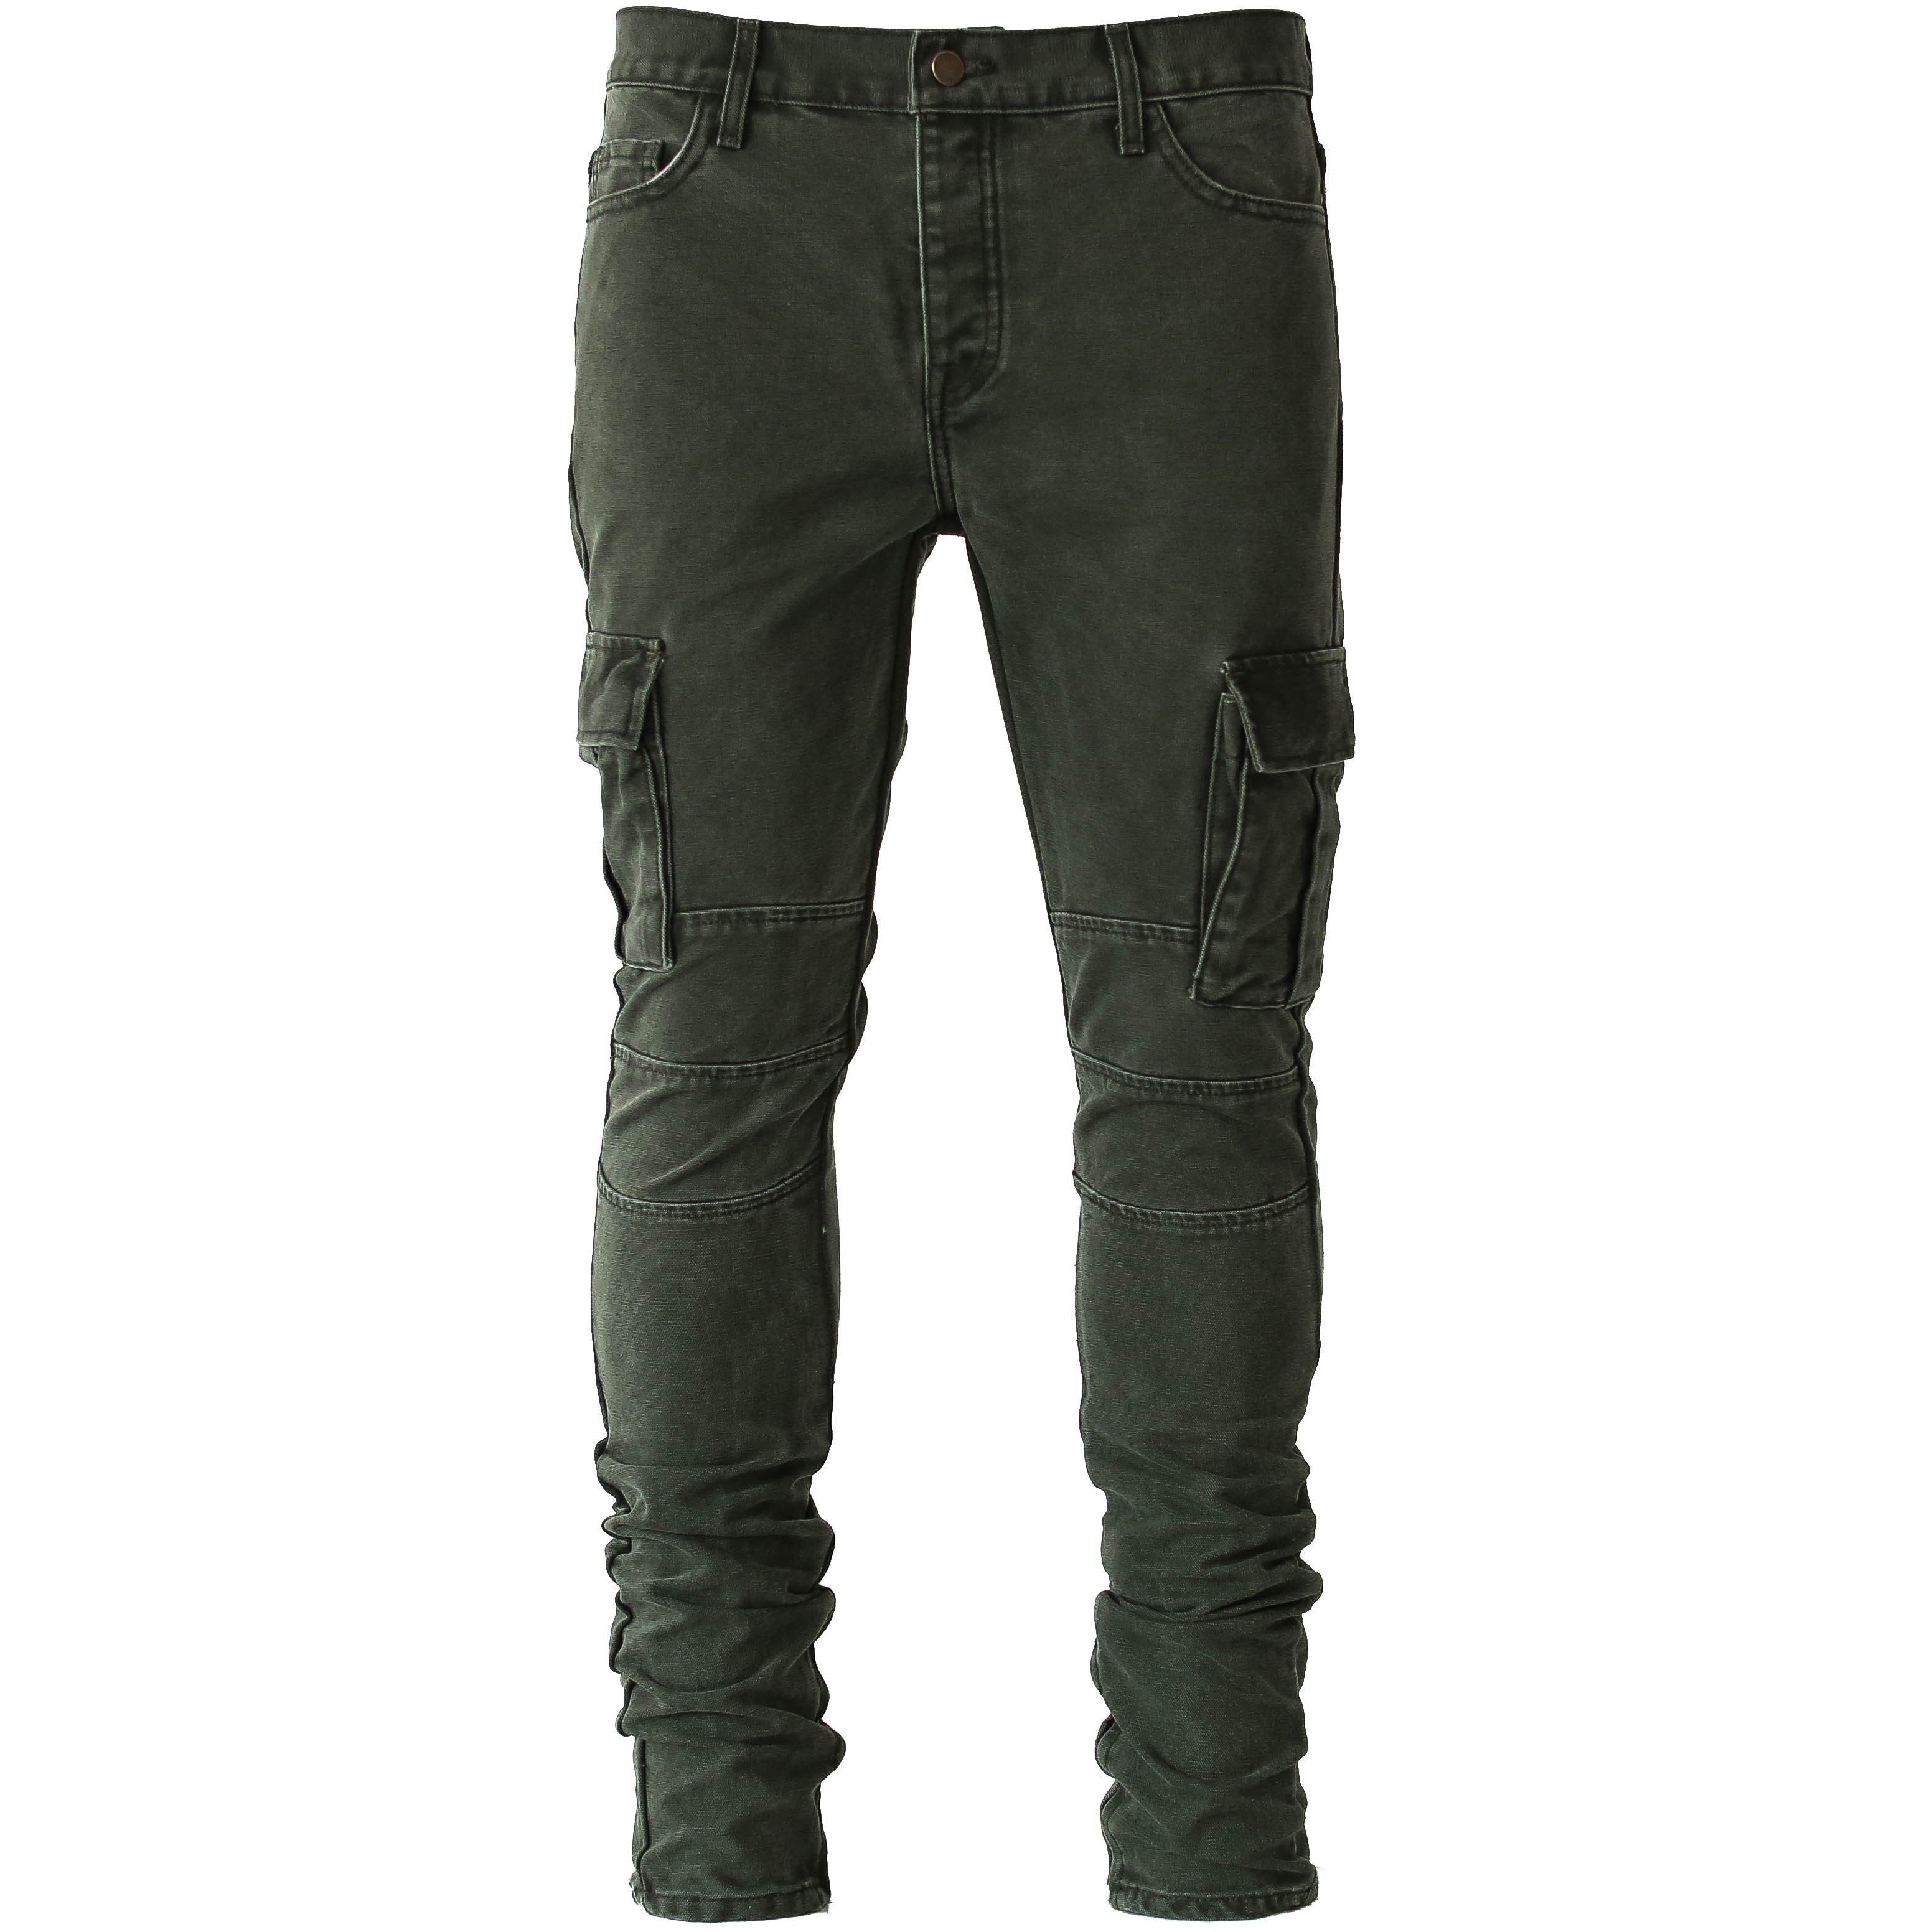 ... the olive cargo pants ... zocndpy